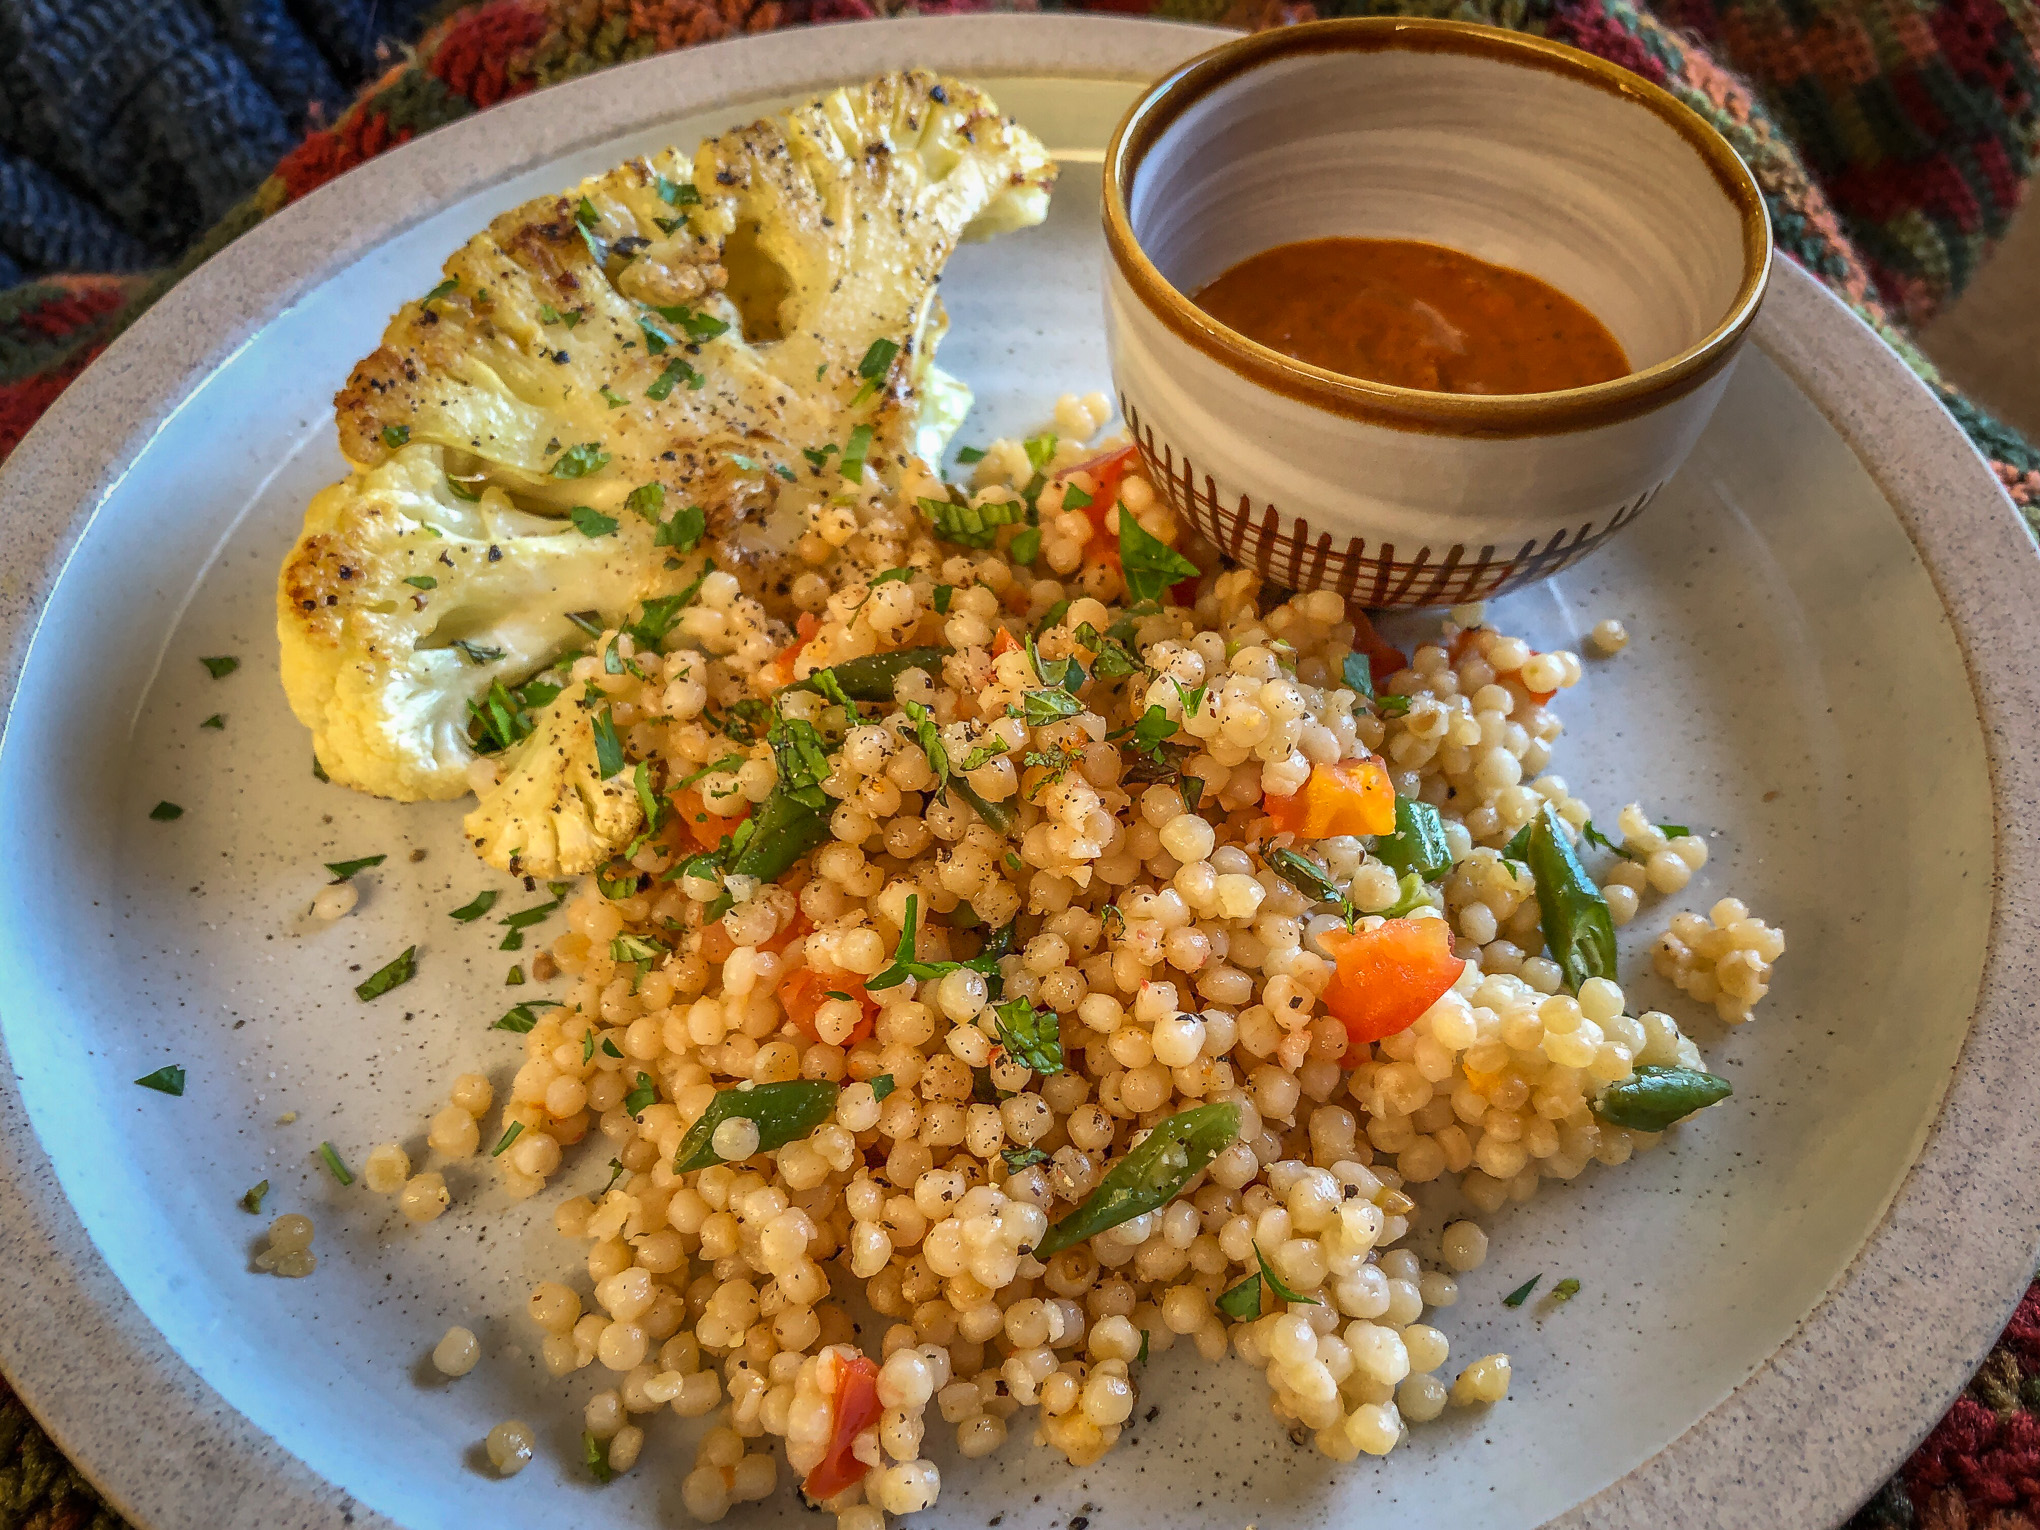 Couscous, cauliflower on plate